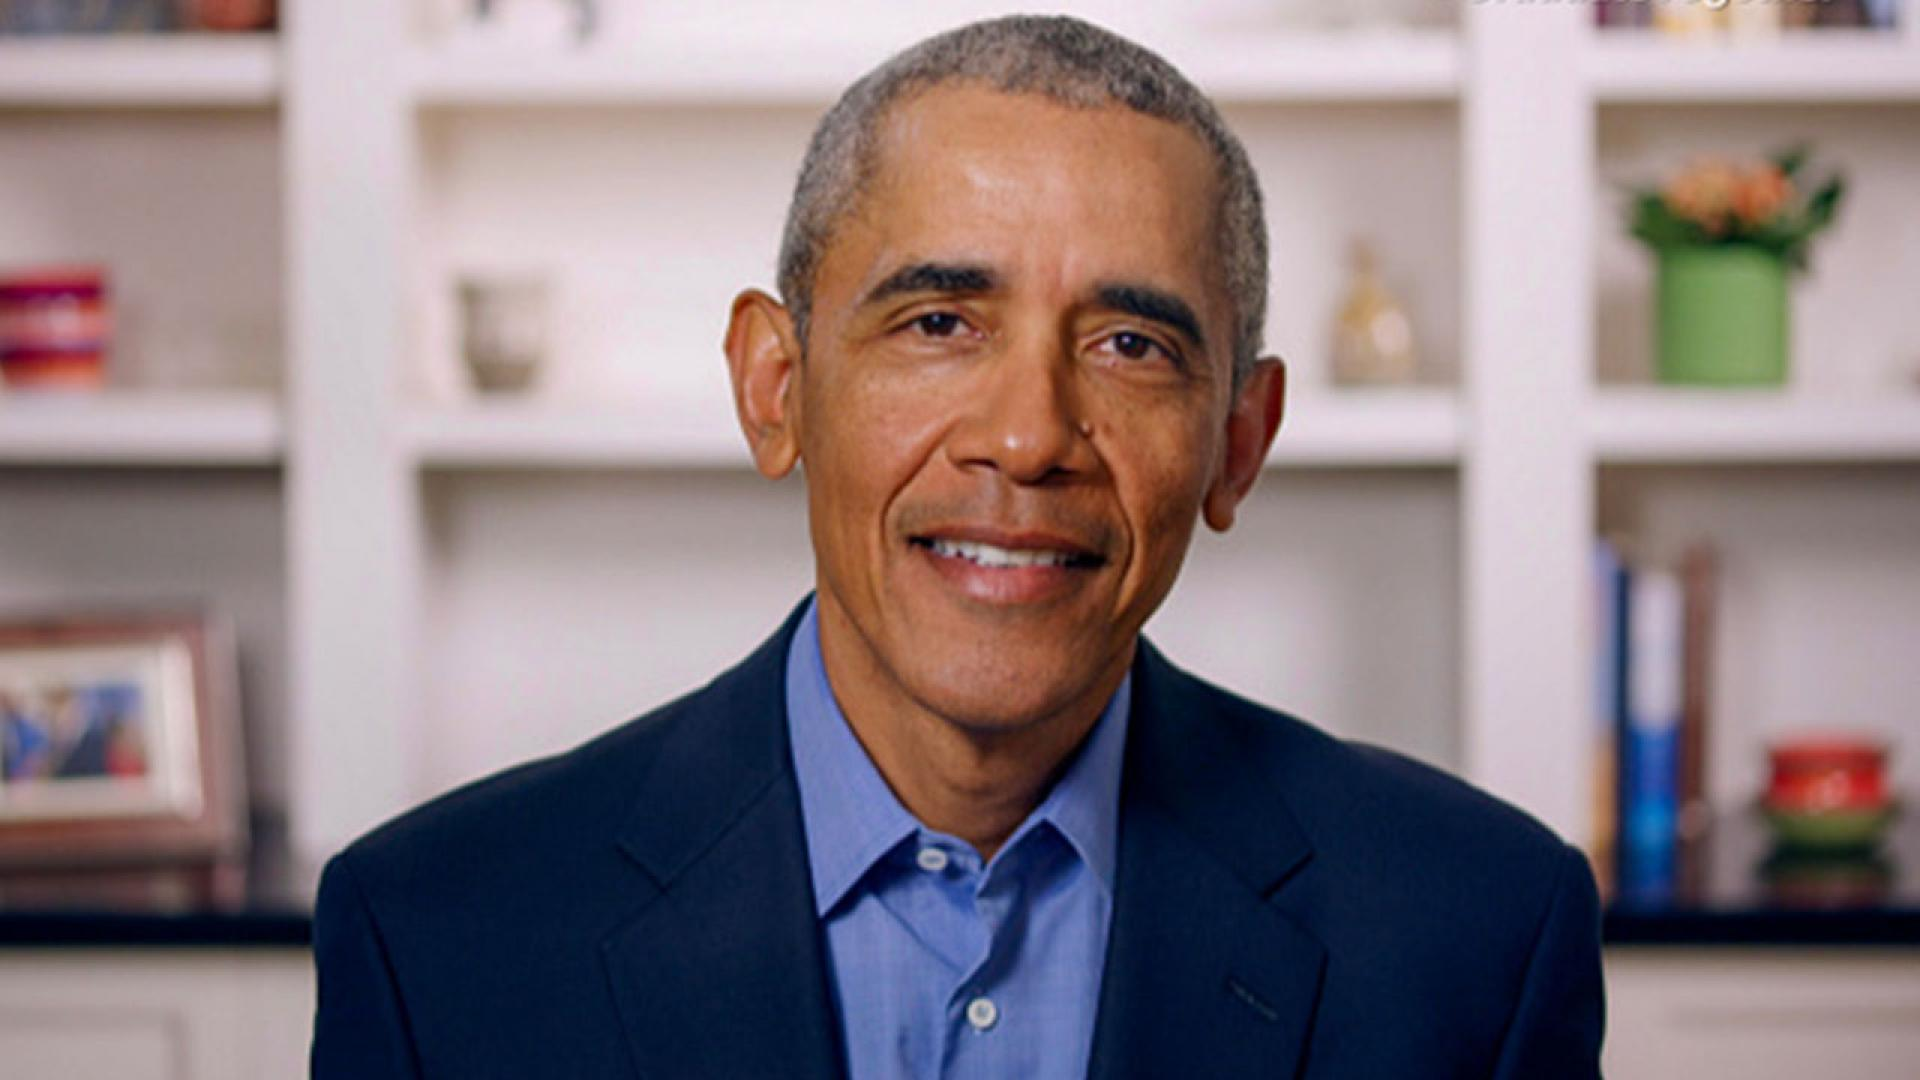 Former President Barack Obama makes a surprise virtual visit with high school students in Chicago